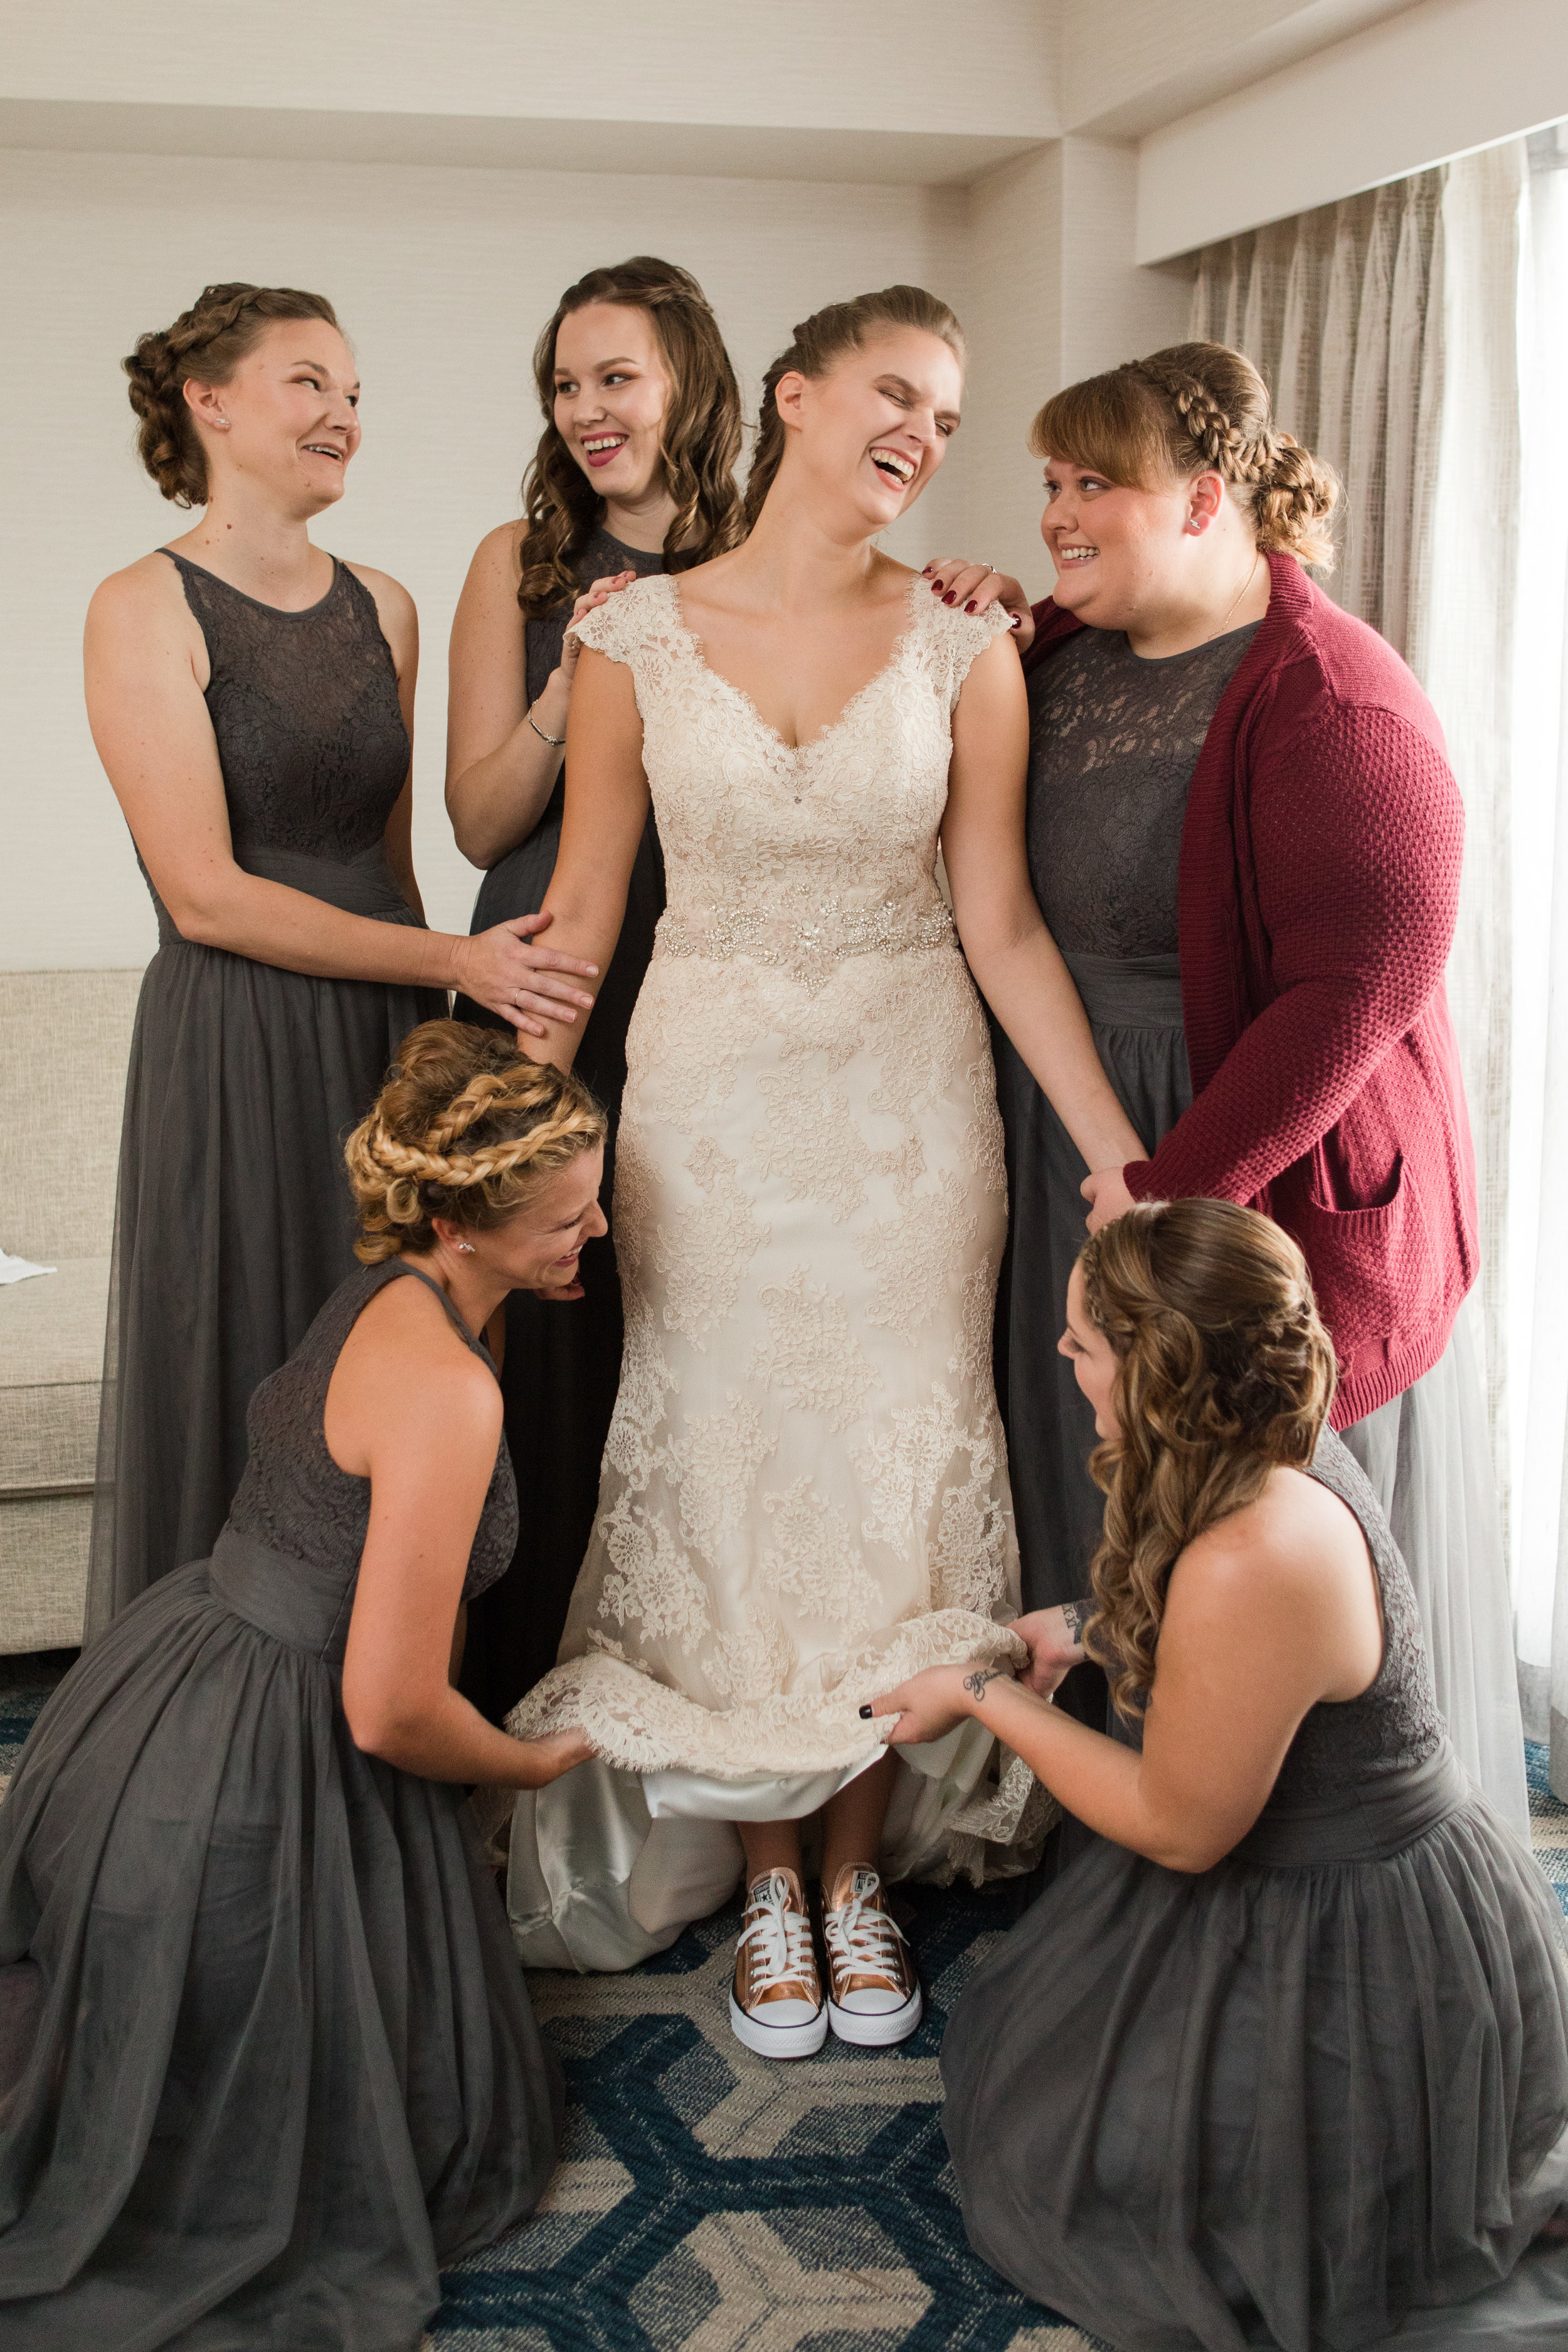 Bridesmaids help bride in lace gown into dress and rose gold converse wedding shoes